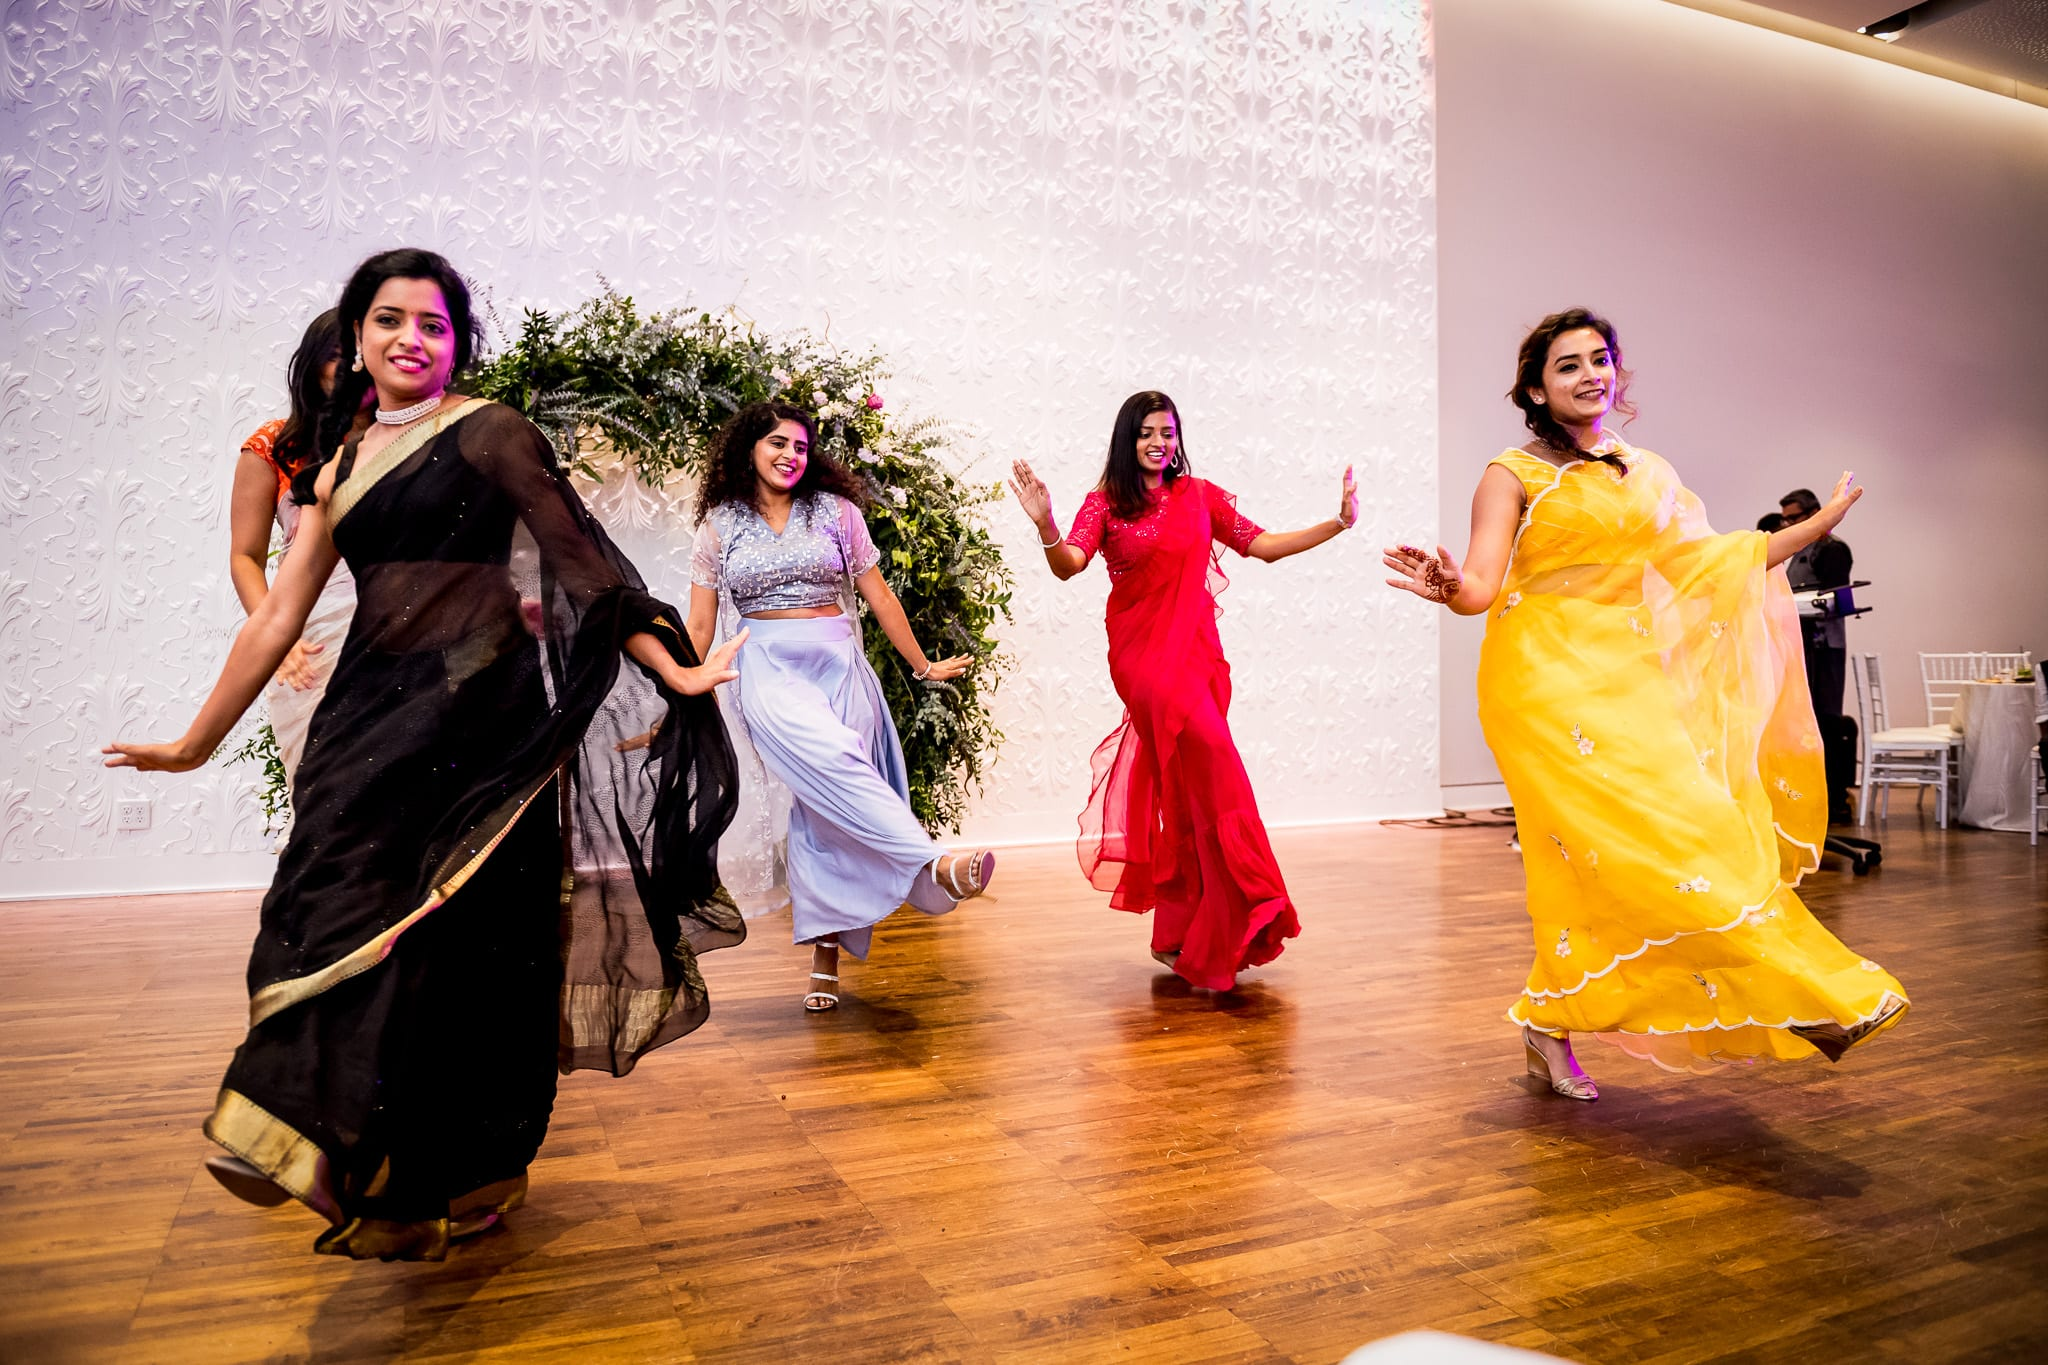 Bridesmaids perform a choreographed dance